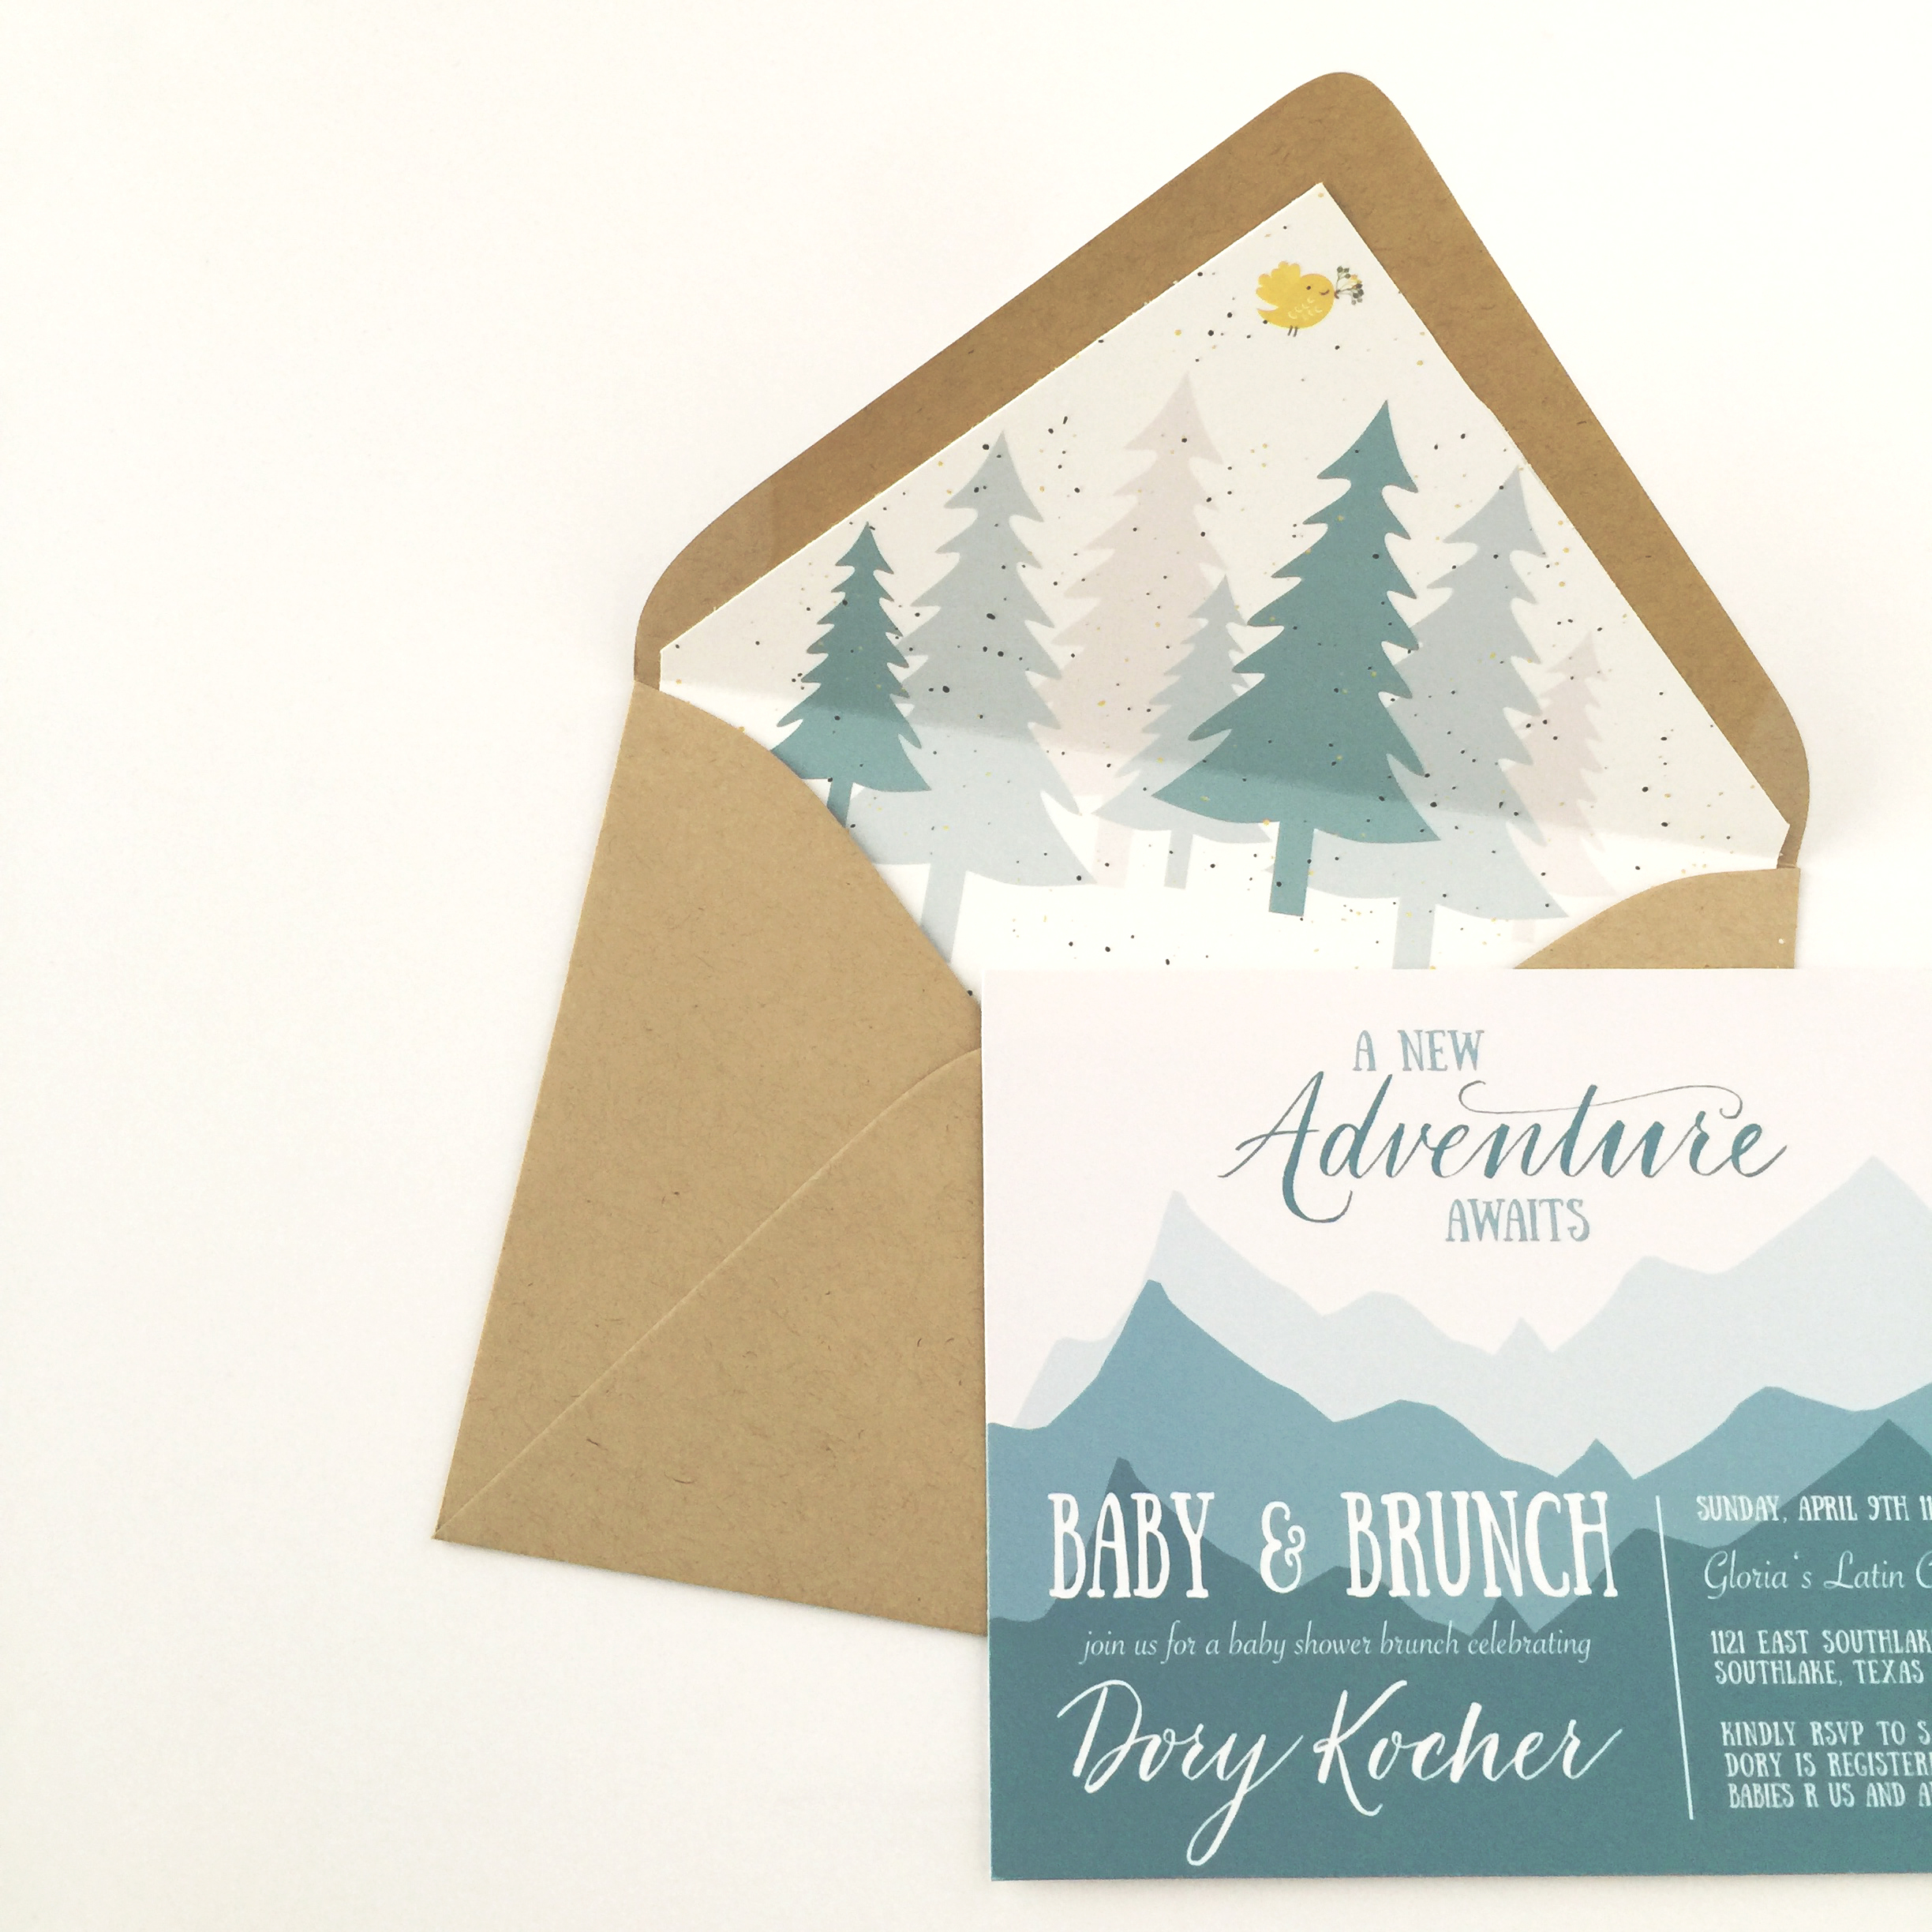 mountain baby shower theme invitations. blue mountains and trees. adventure awaits baby brunch.